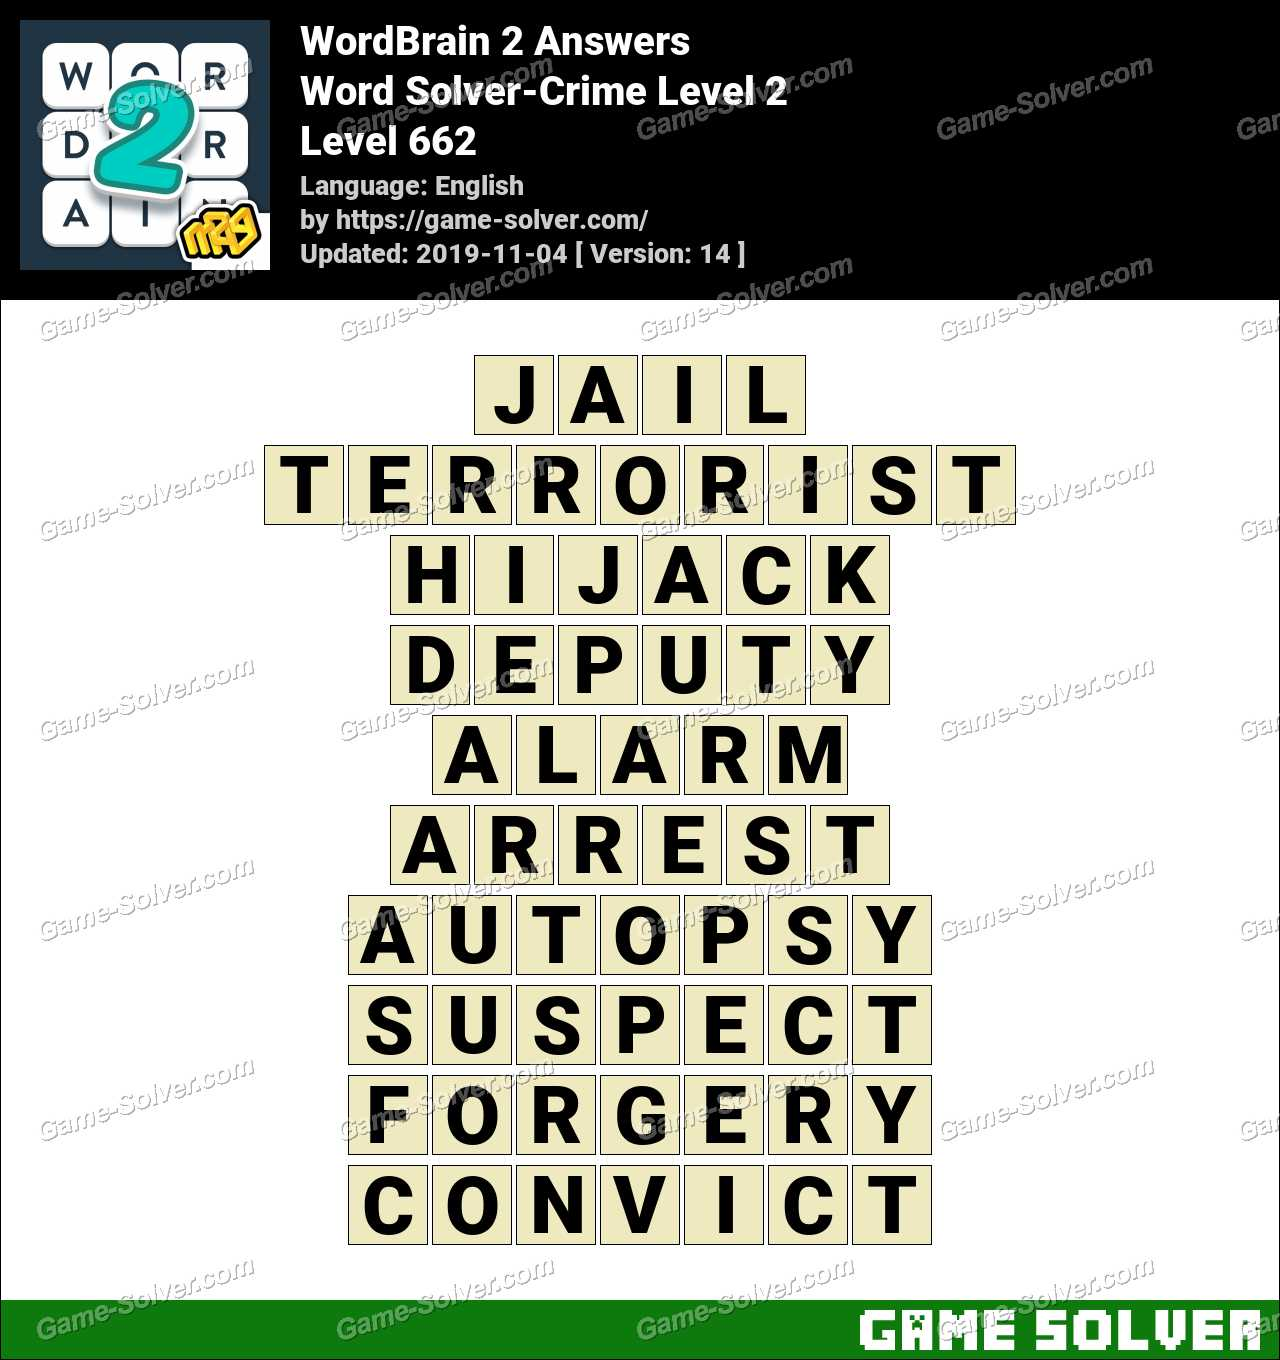 Word Solver Crime Level 2 Answers